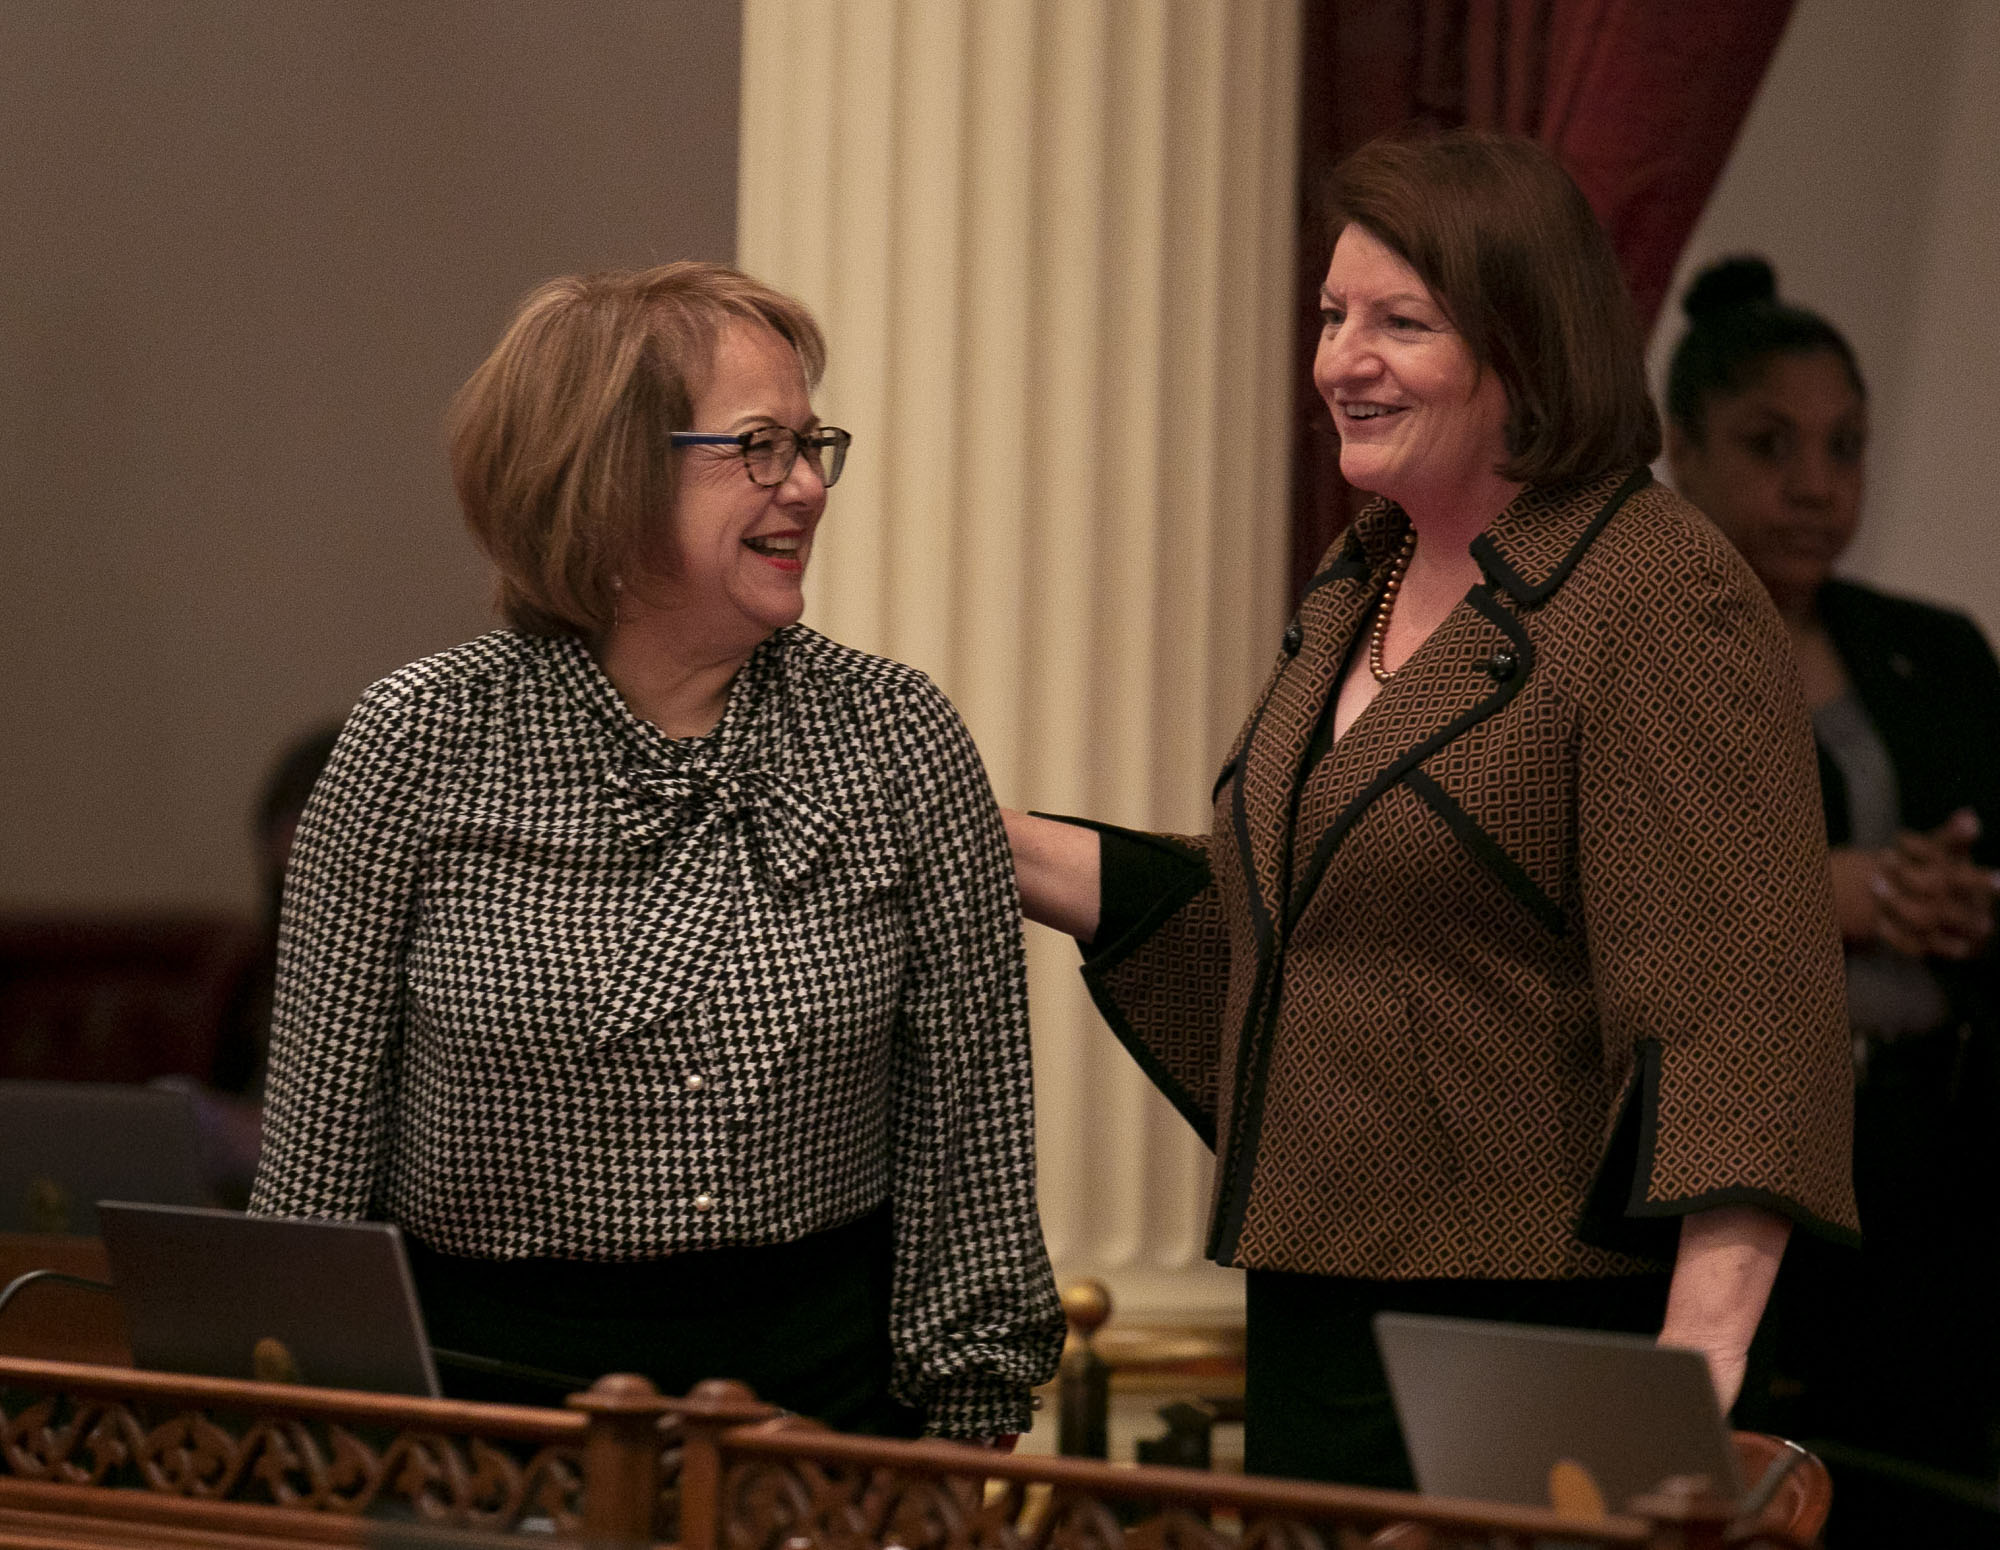 Sen. Maria Elena Durazo,, left, and Senate President pro Tempore Toni Atkins smile on the senate floor on the first day of the 2020 legislative session